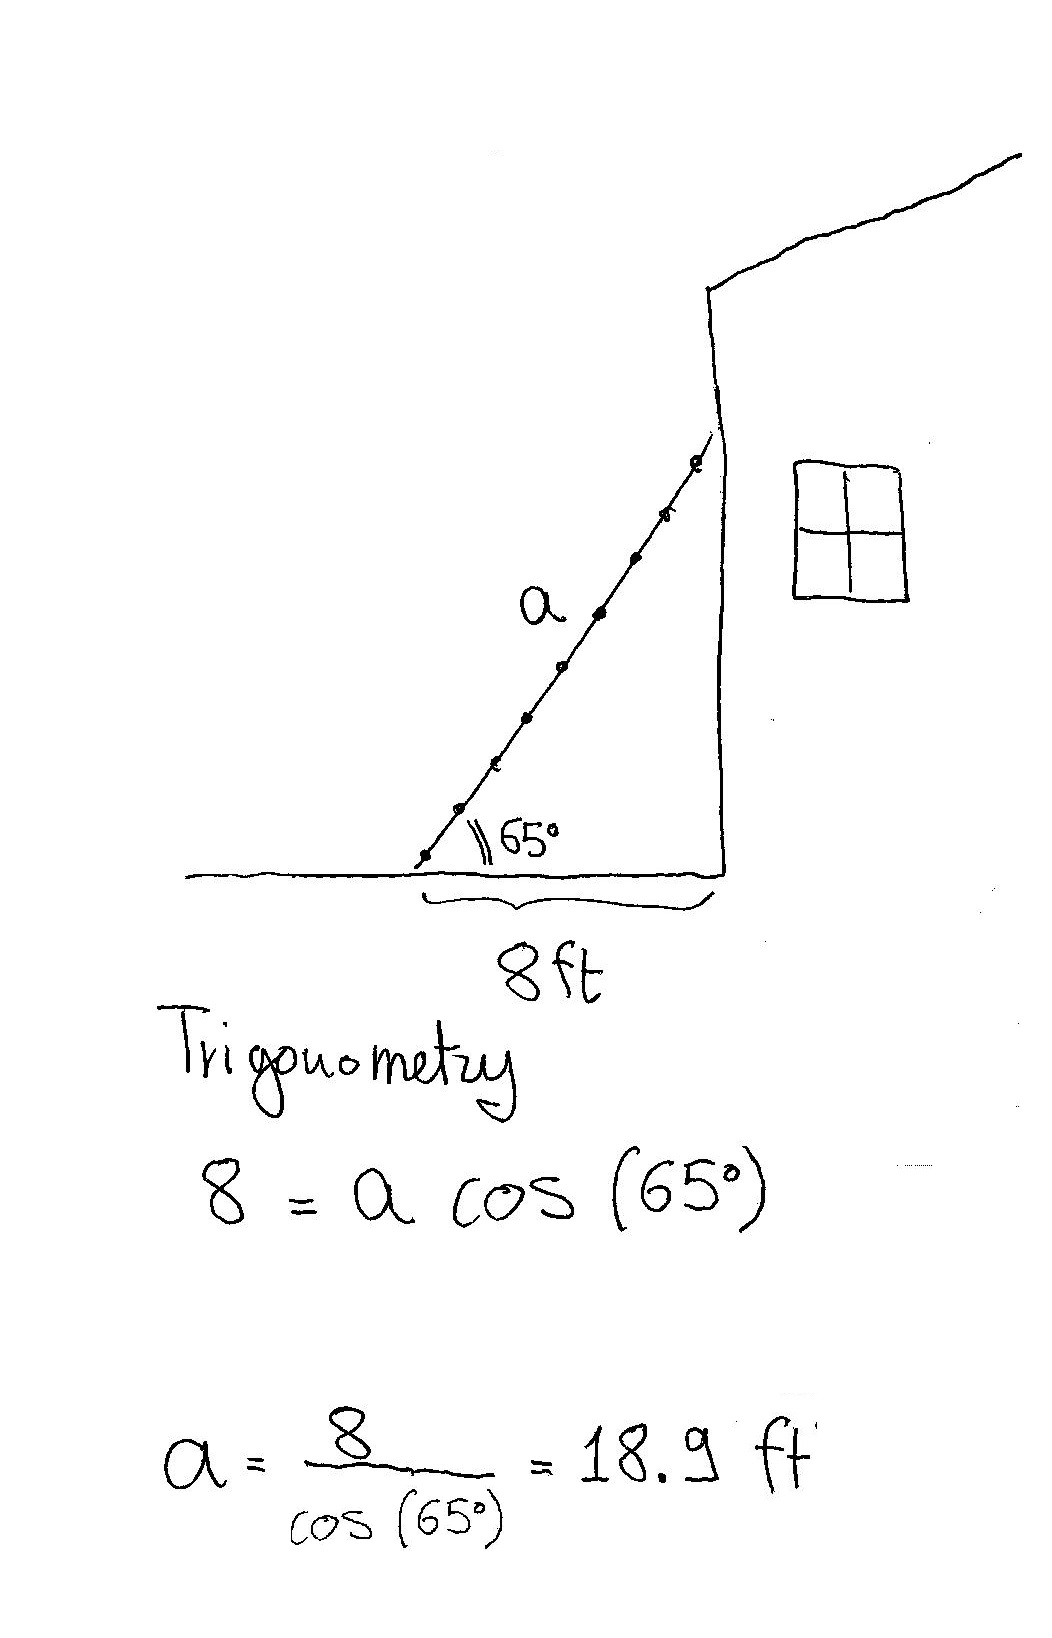 A Ladder Leaning Against The Side Of A House Forms An Angle Of 65 With The Ground The Foot Of The Ladder Is 8 Feet From The Building What Is The Length